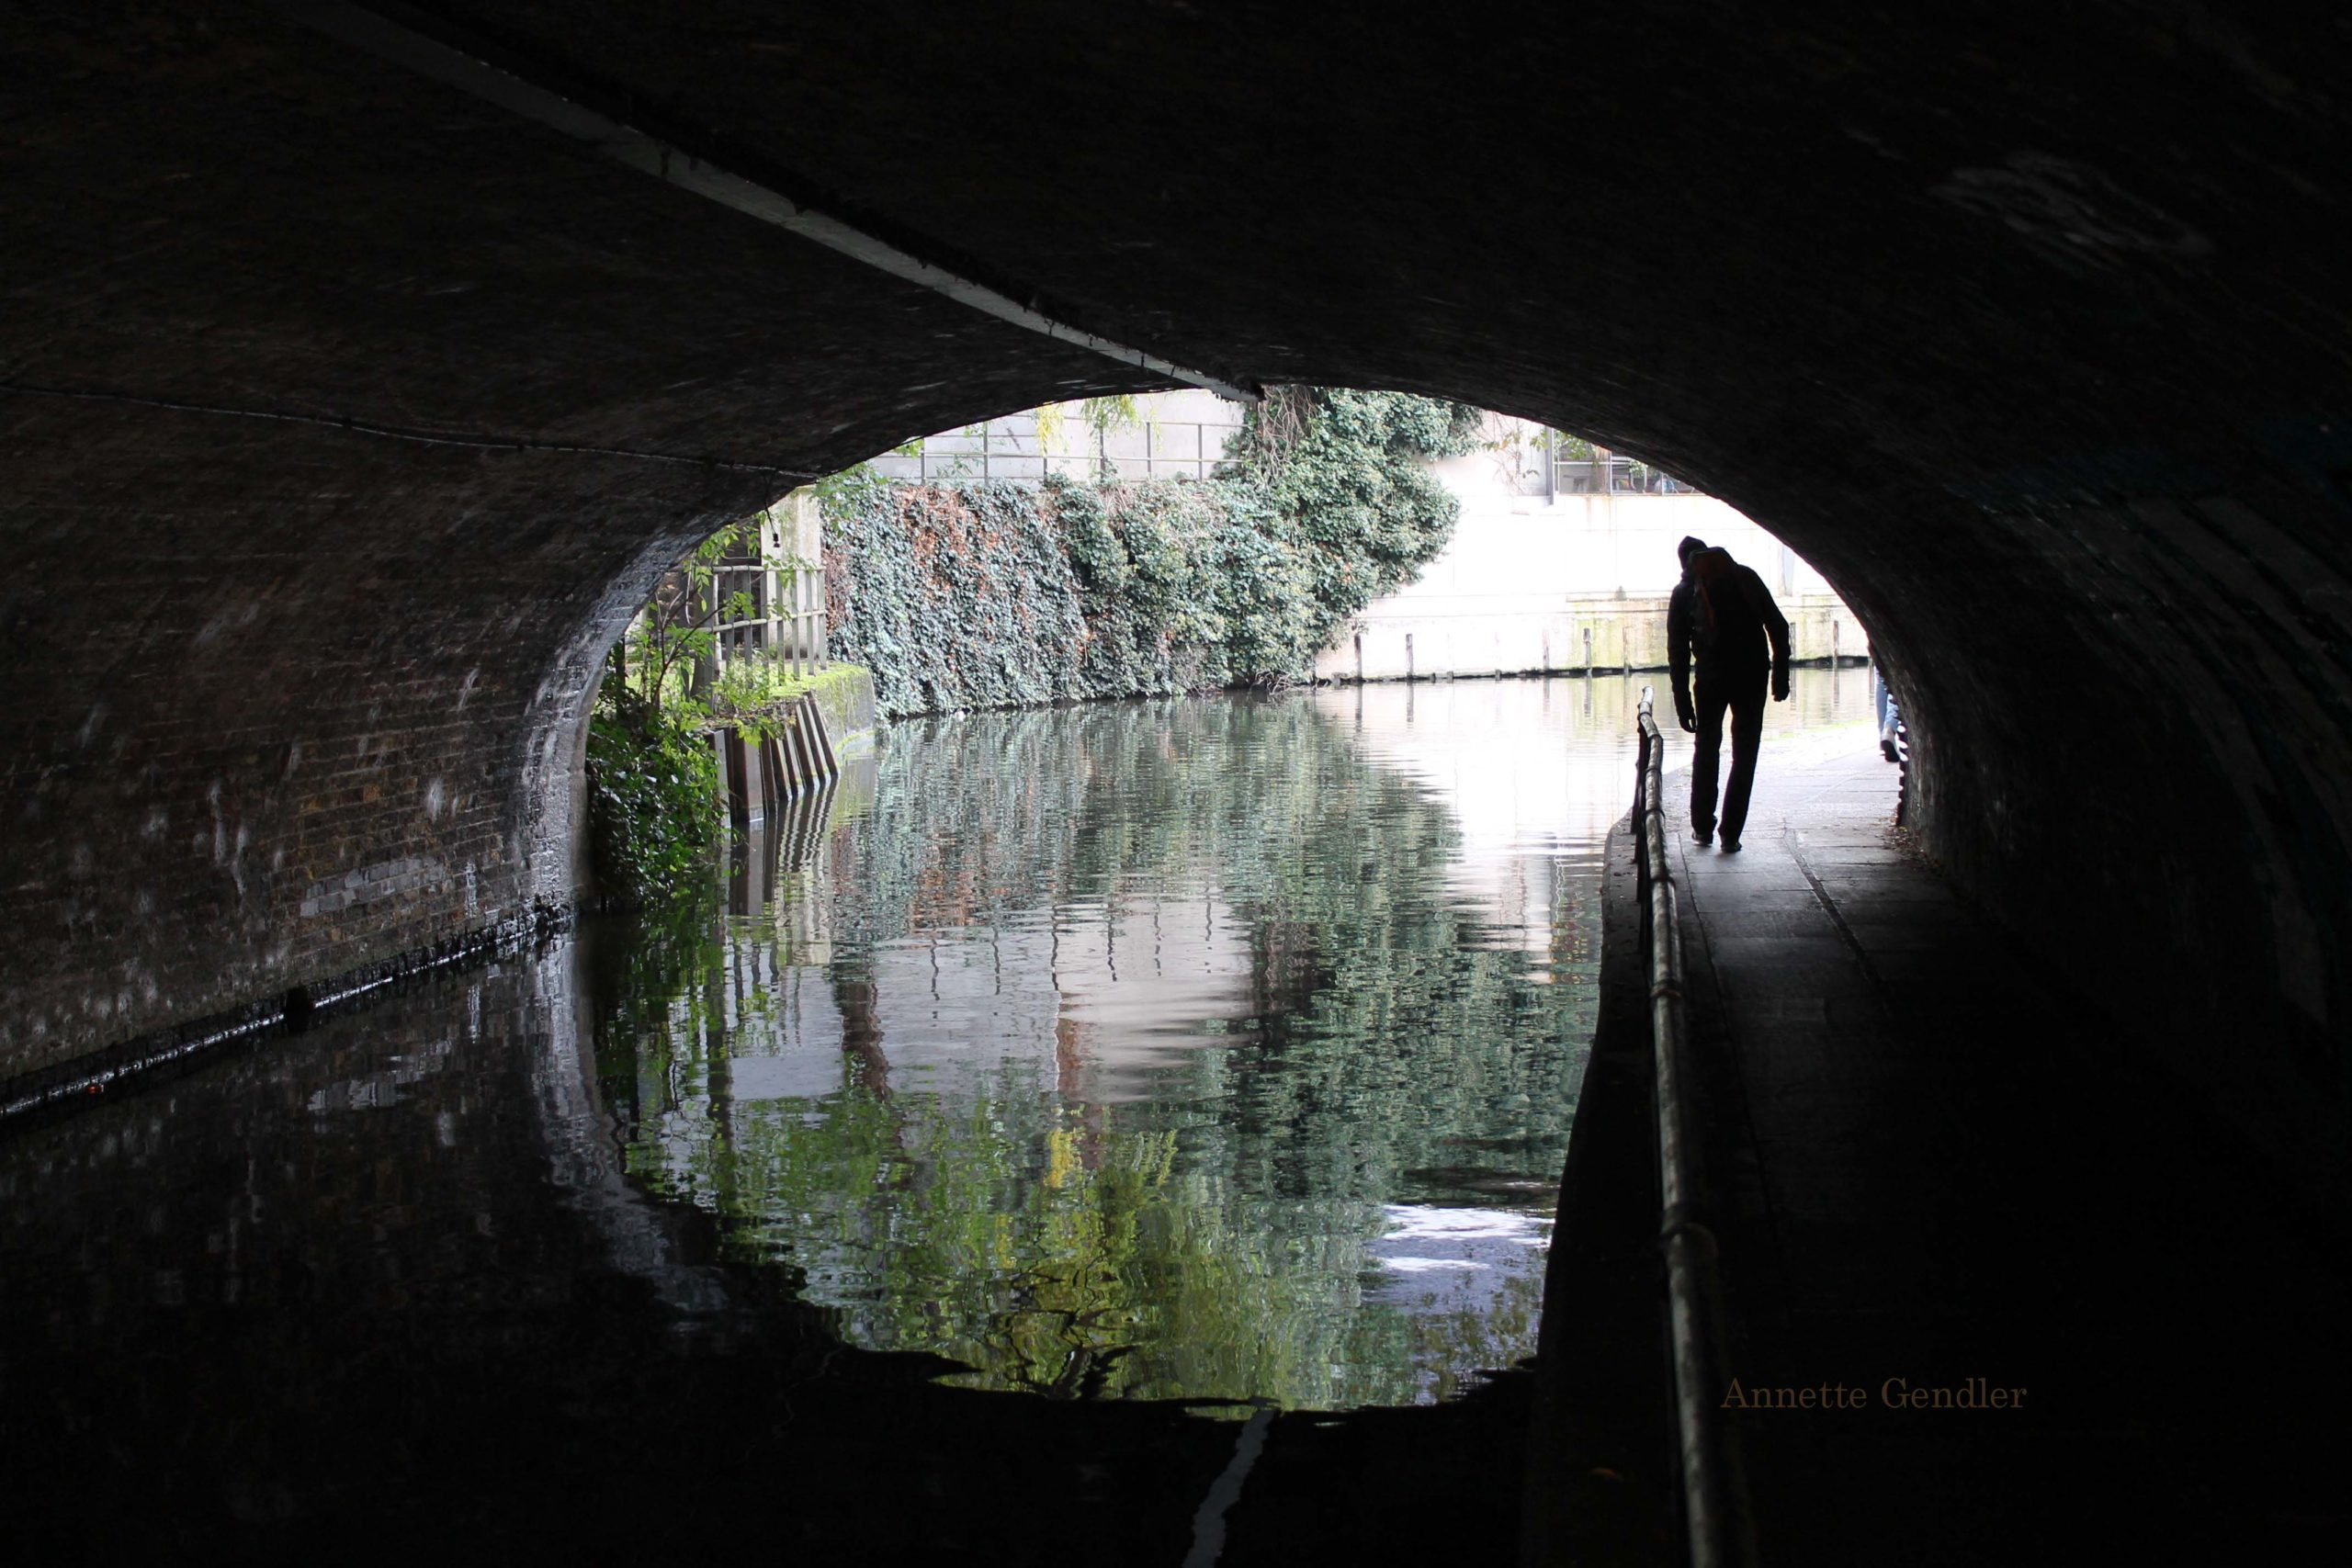 oval canal tunnel opening with black figure bending to walk through it